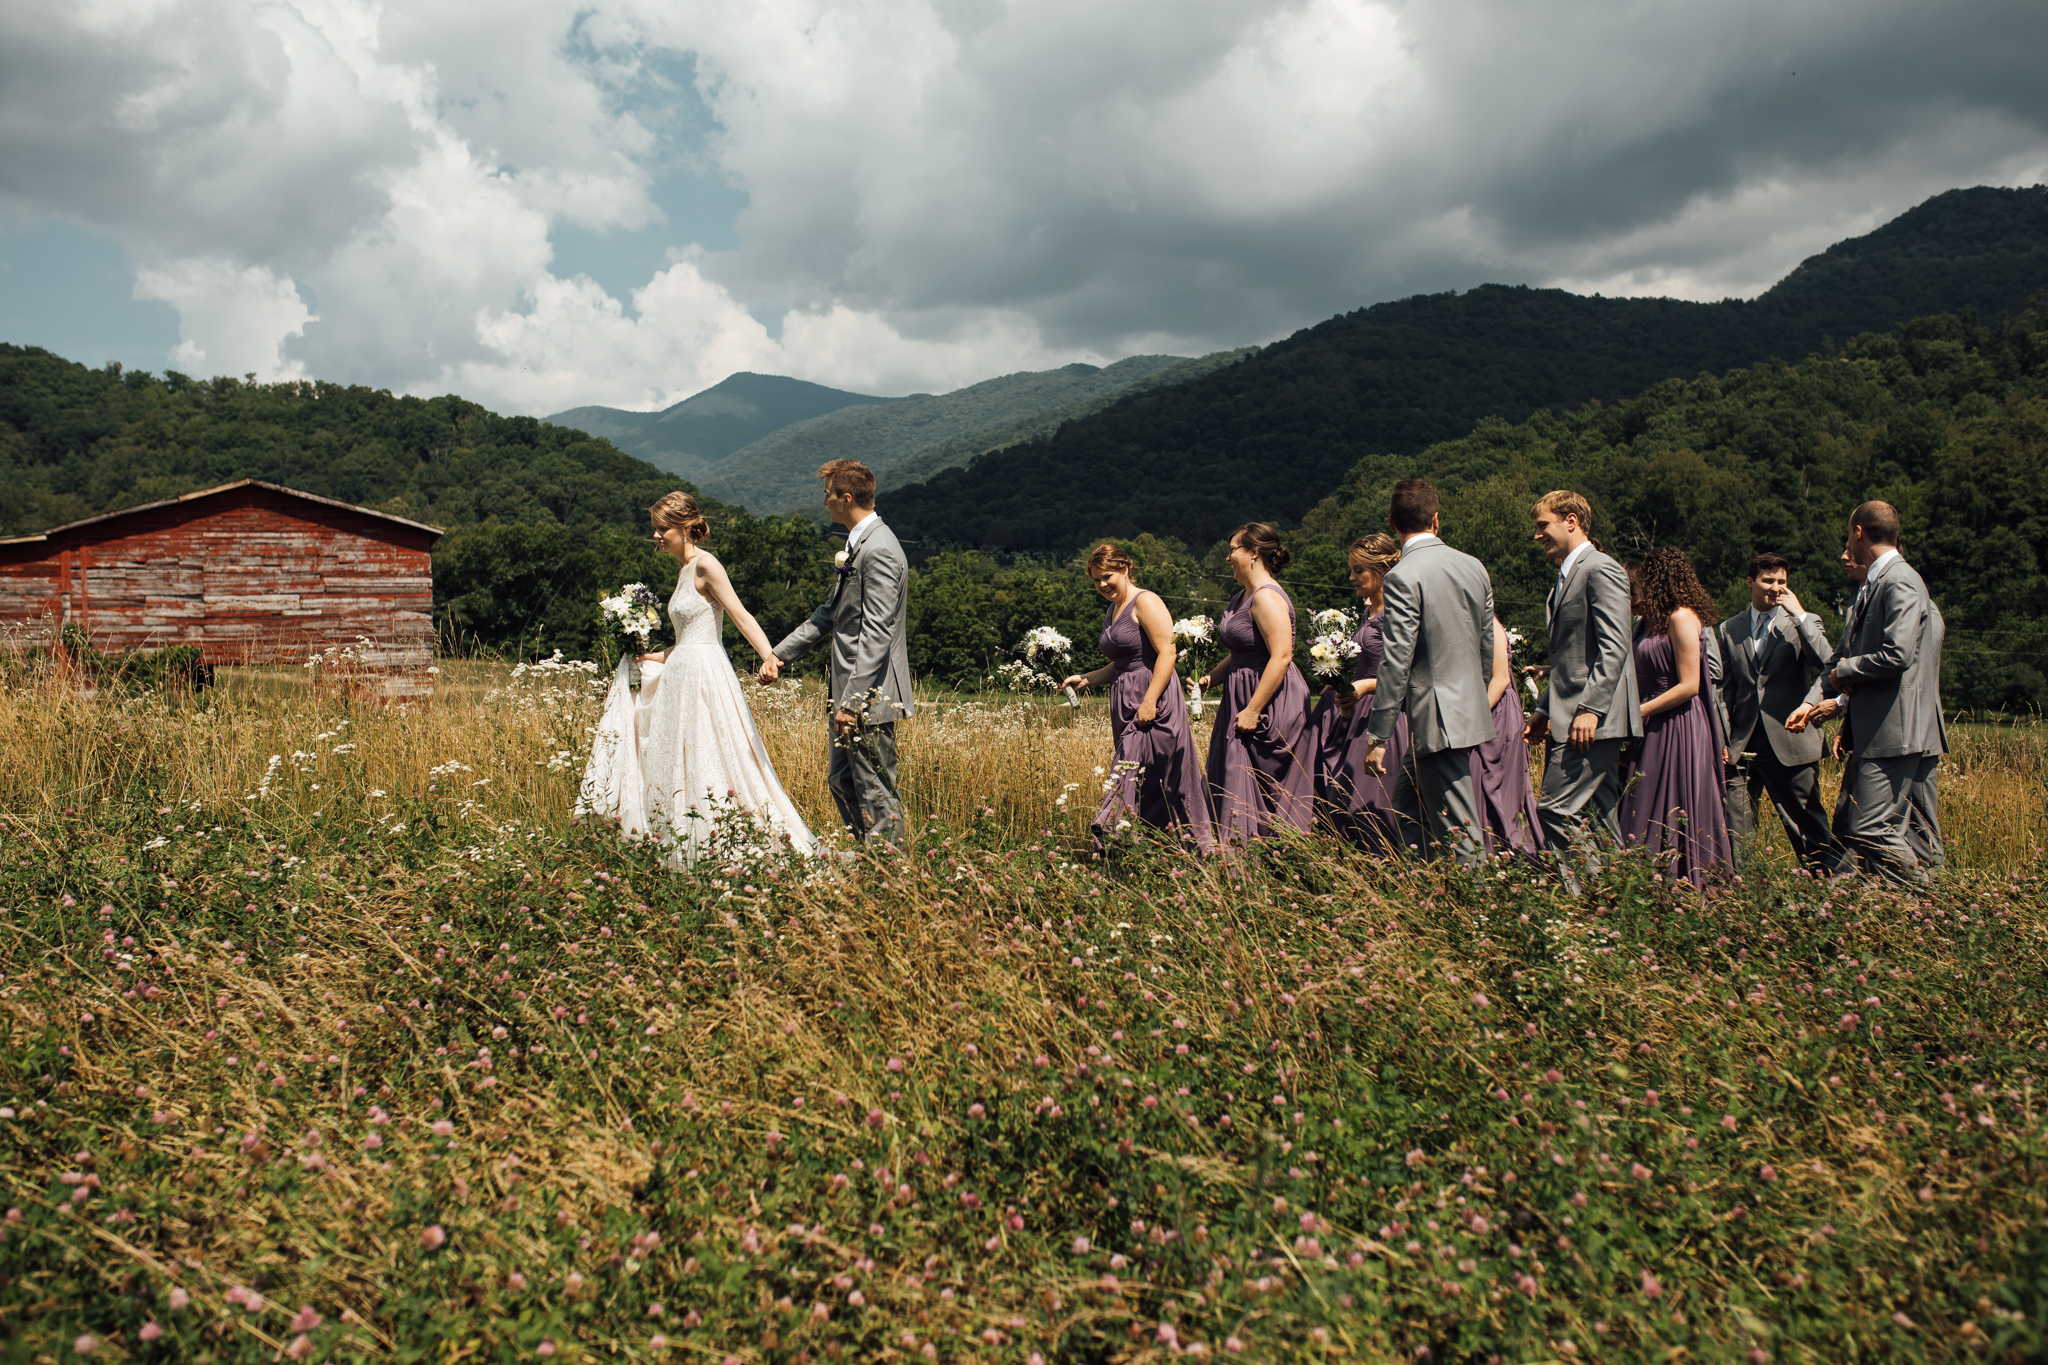 ashville-wedding-photographers-thewarmtharoundyou--backyard-asheville-wedding-mountain-wedding (67 of 244).jpg